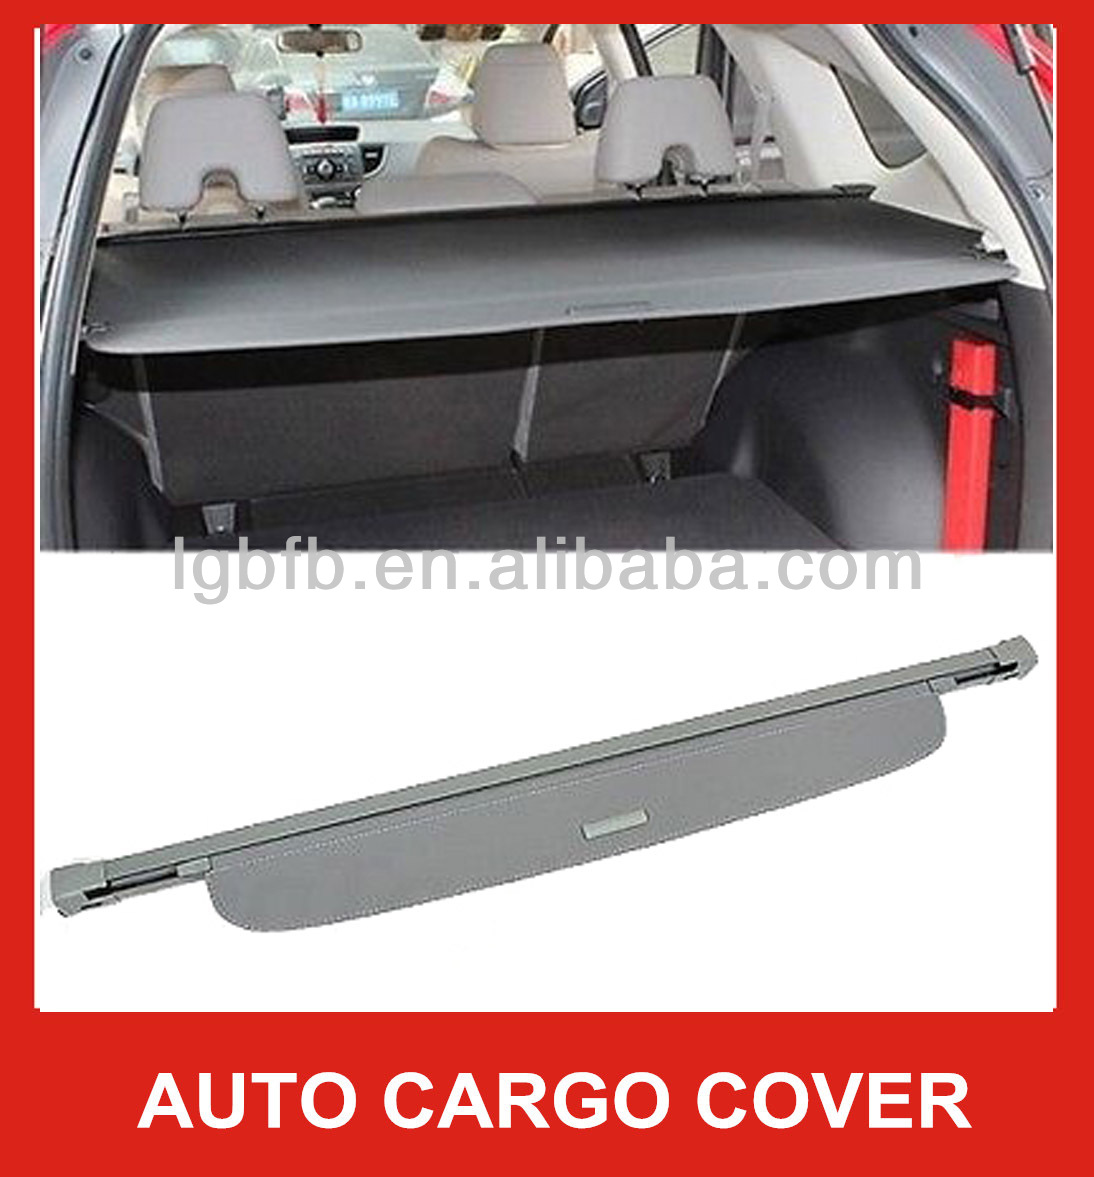 Cargo cover for honda crv cargo cover for honda crv suppliers and manufacturers at alibaba com